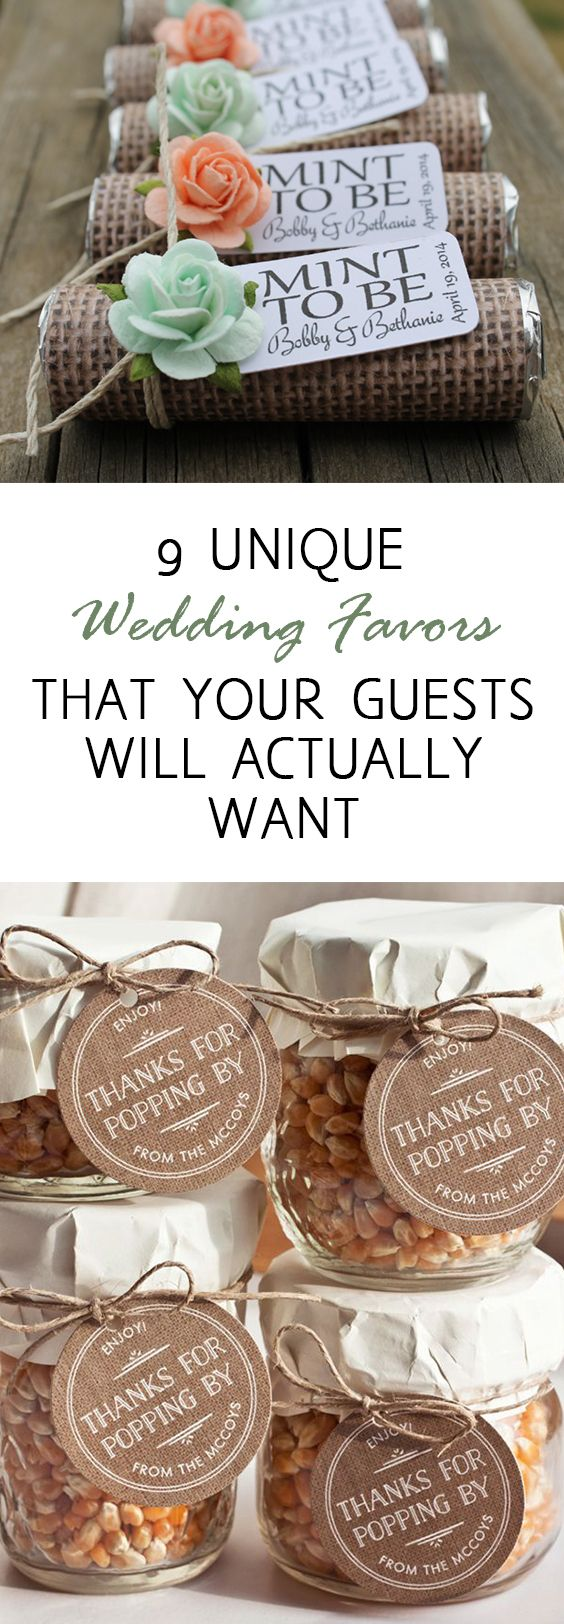 Love The Thanks For Popping By Ones Wedding Favors Favor Ideas